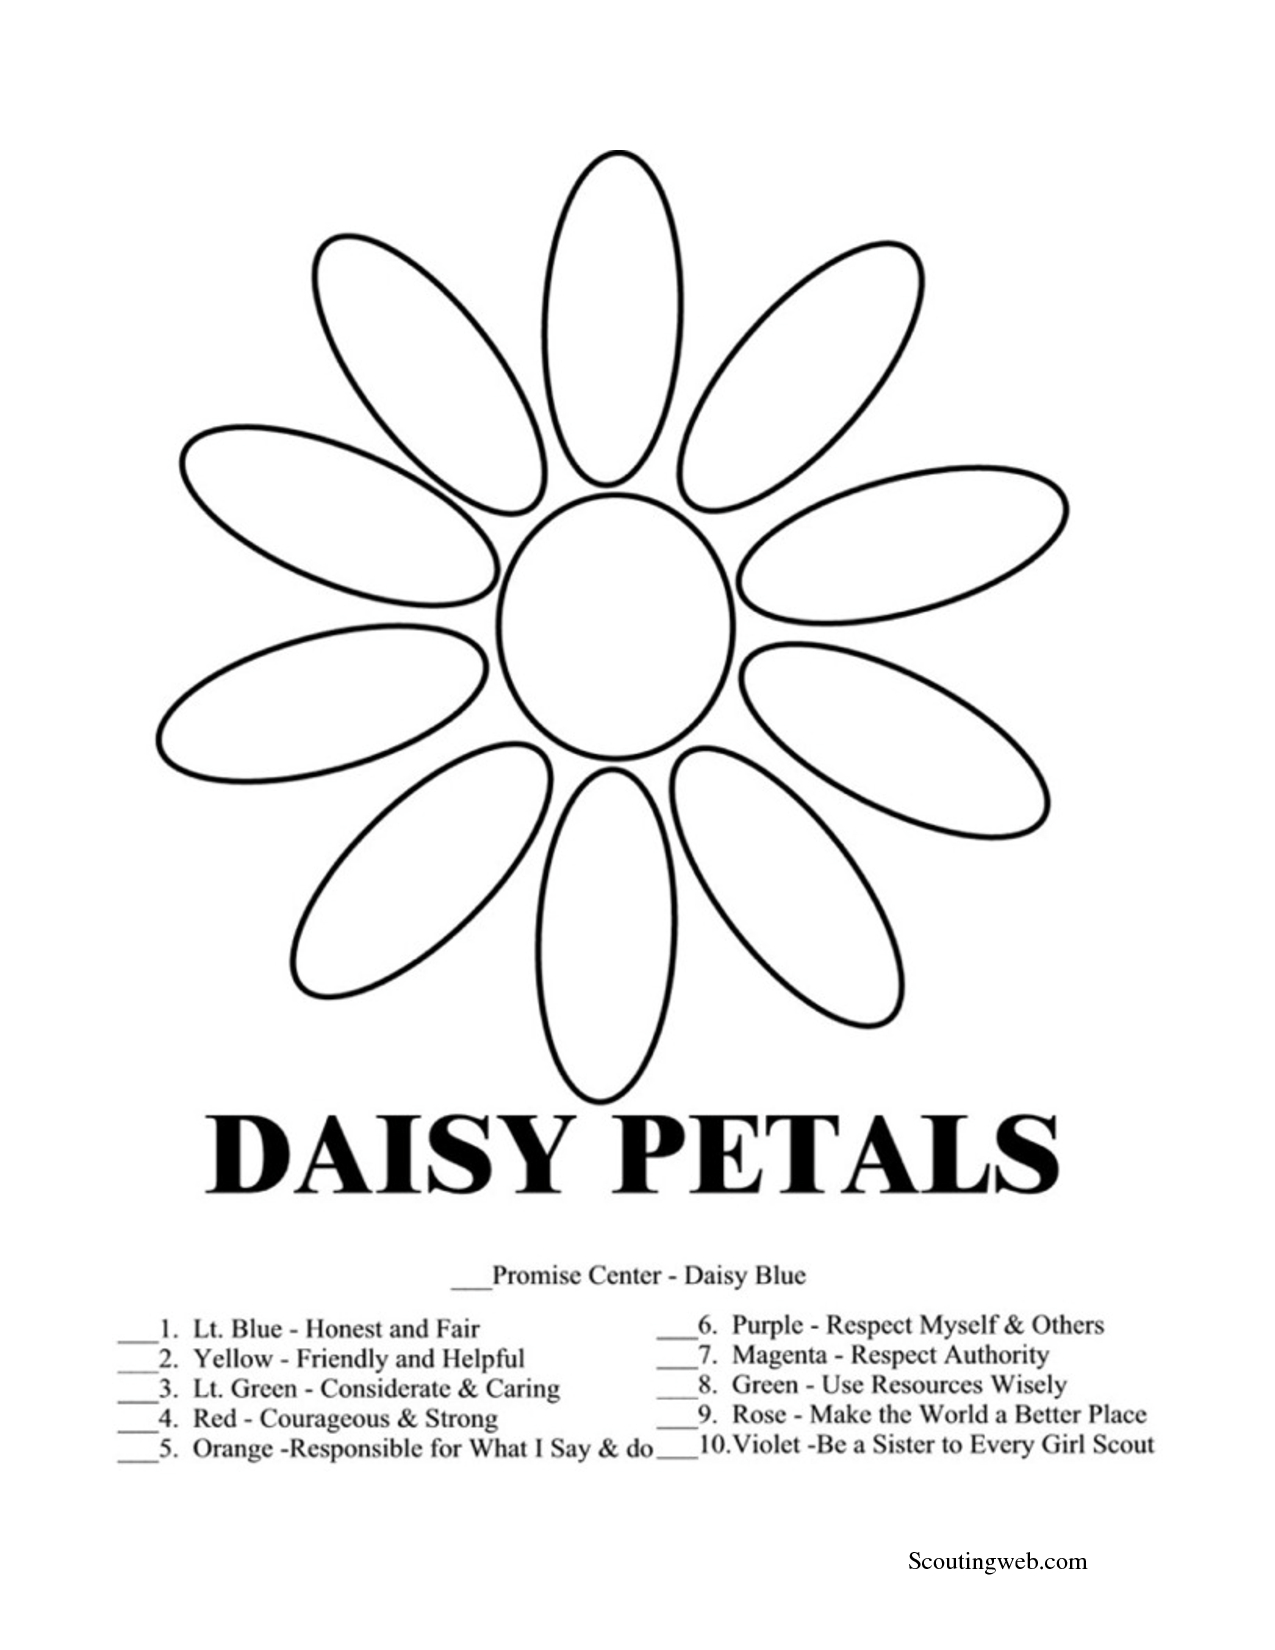 Girl Scout Free Printable Coloring Page | Girl Scouts | Girl Scout - Free Daisy Girl Scout Printables